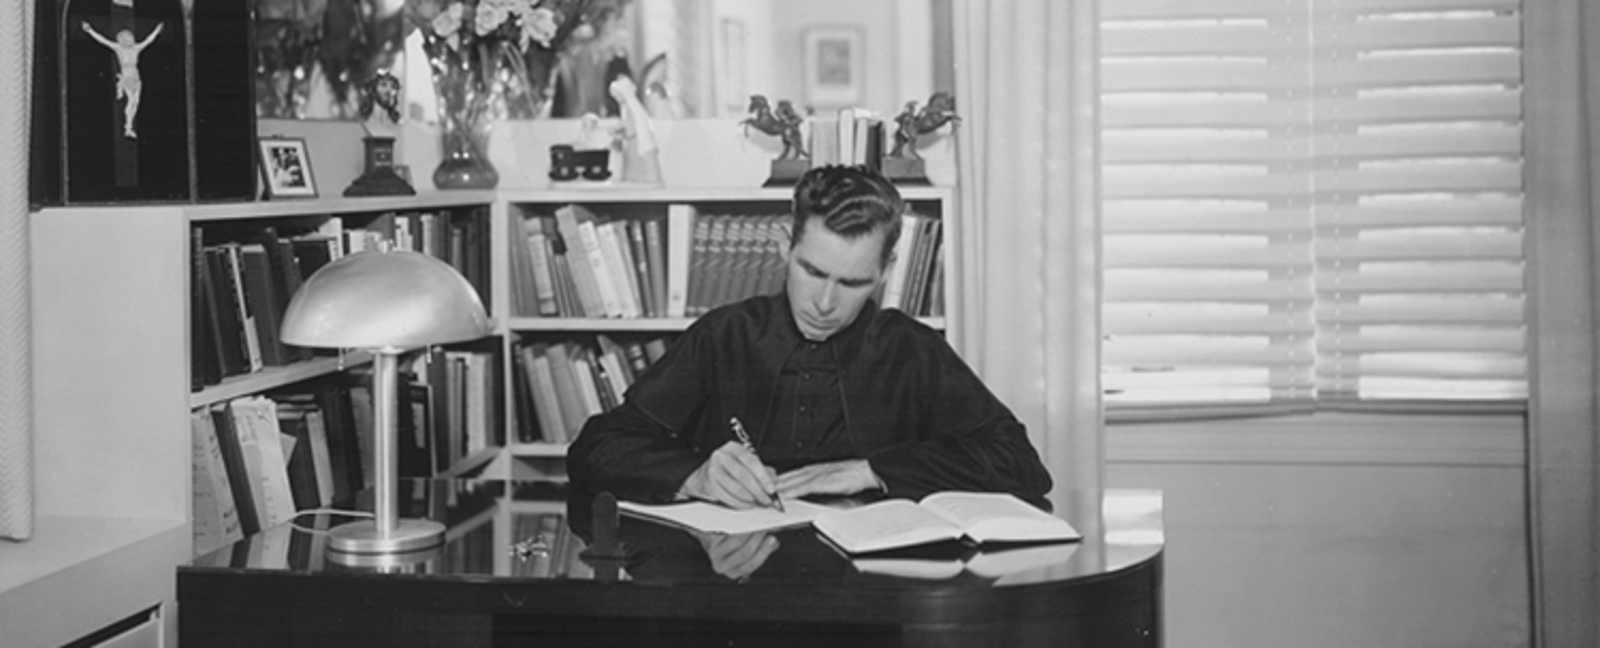 Fulton Sheen working at his desk